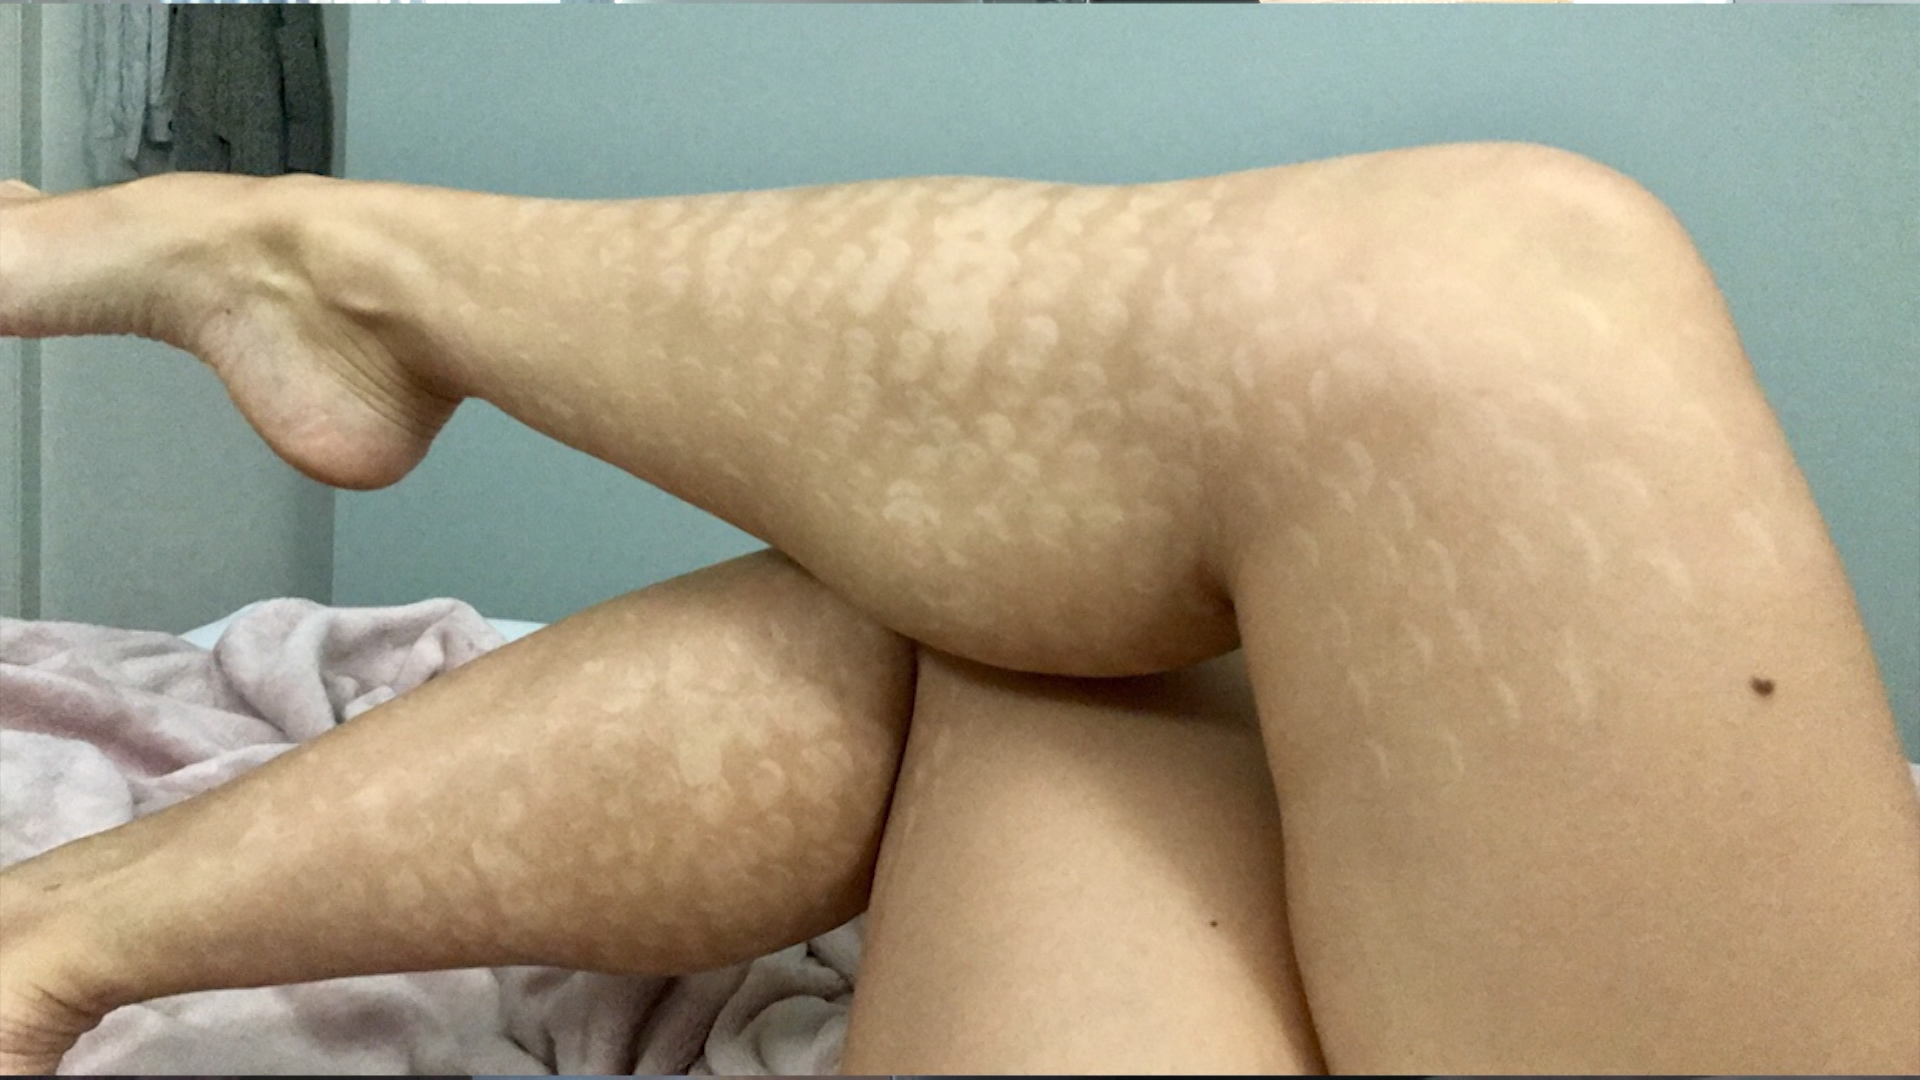 Laser Hair Removal Left Exotic Dancer With Unsightly Marks